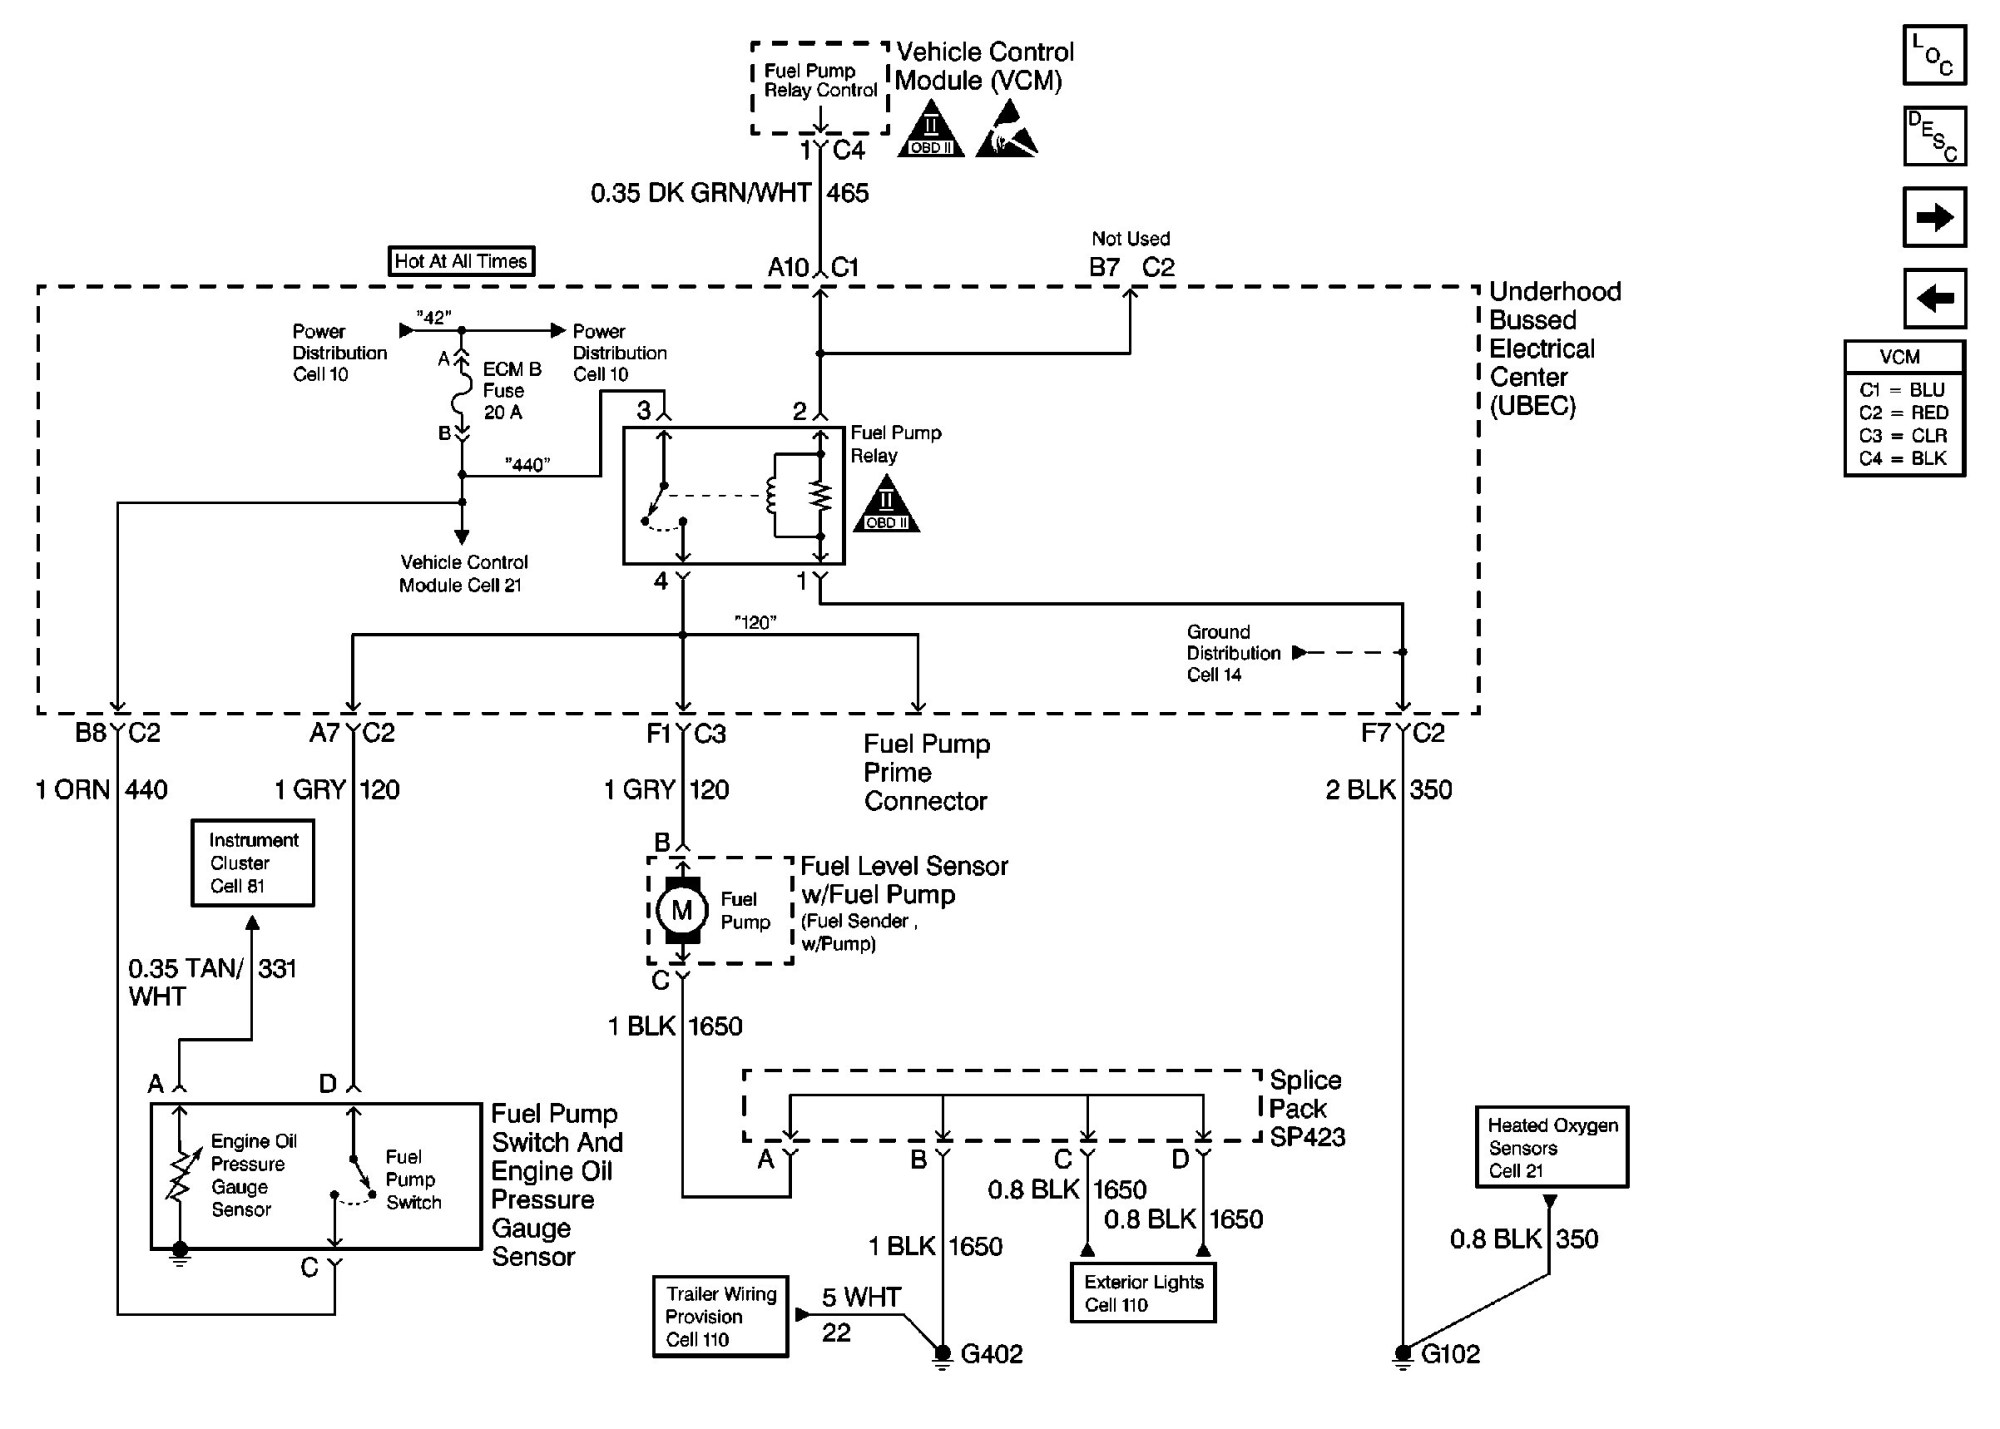 hight resolution of benz s500 2000 engine diagram on 1994 chevy sel wiring diagram rh koloewrty co 2001 mercedes